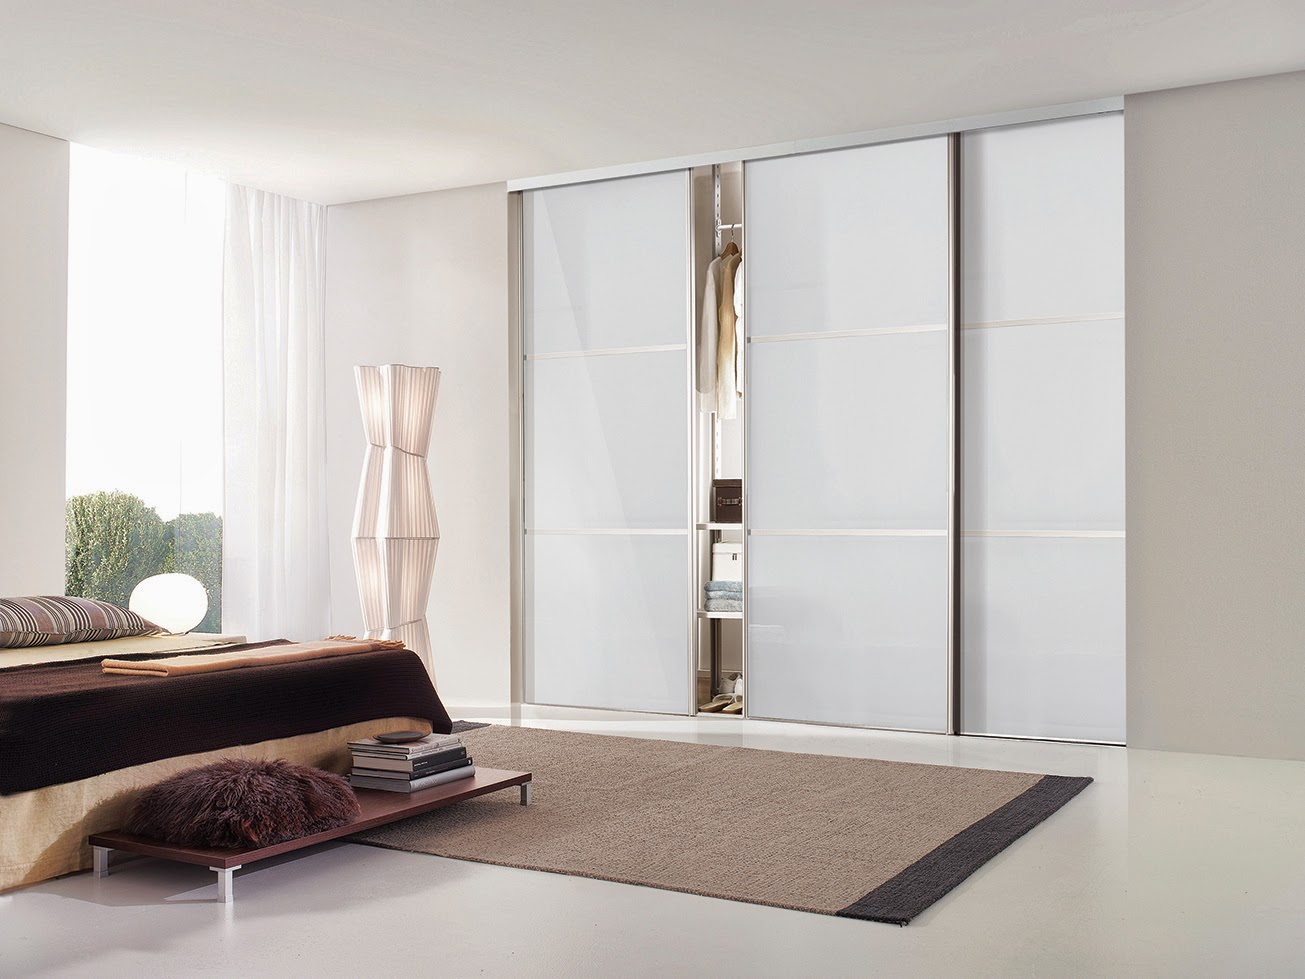 Le Meilleur Bedrooms Plus Sliding Wardrobe Doors And Fittings March 2014 Ce Mois Ci